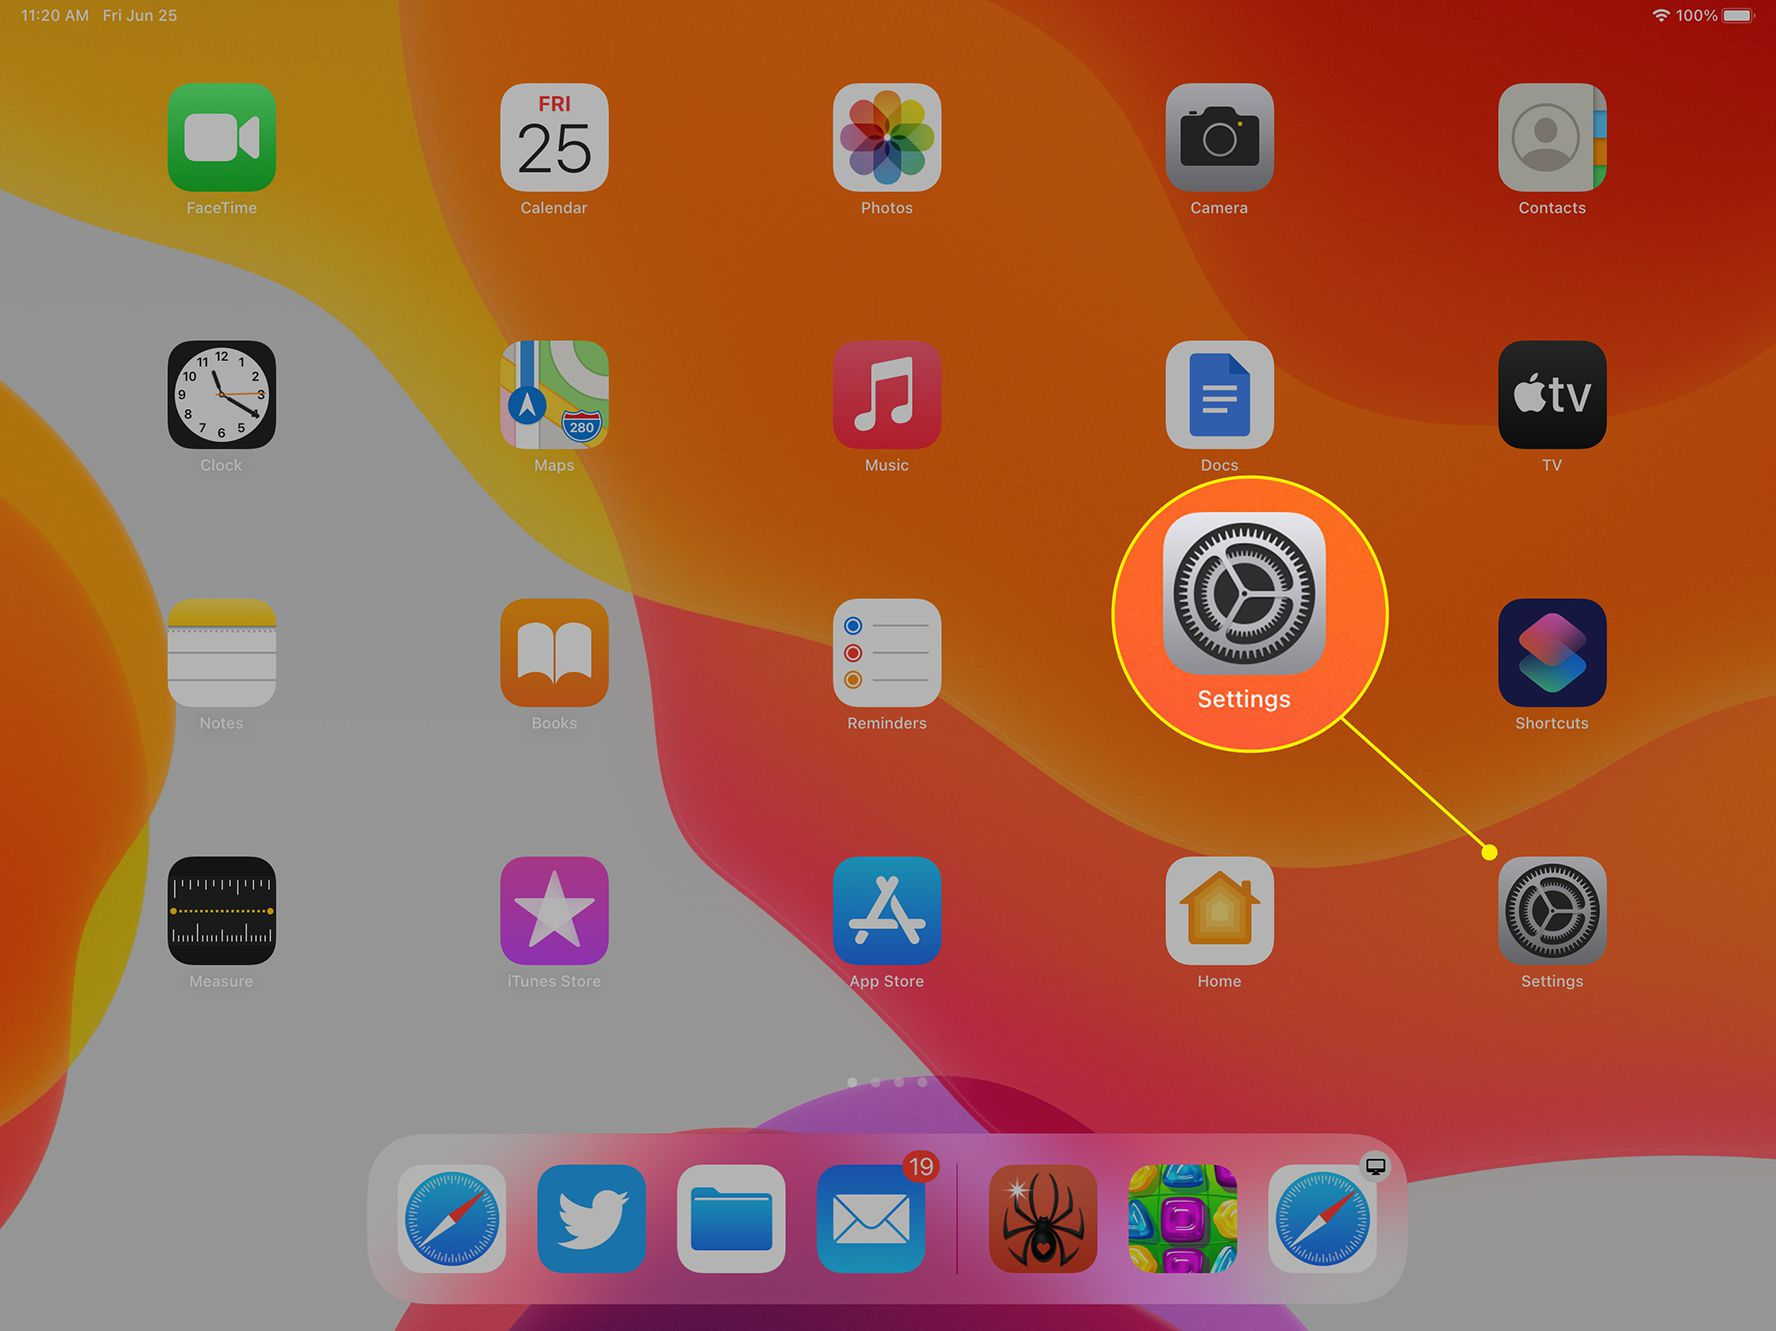 iPad Home screen with Settings icon highlighted